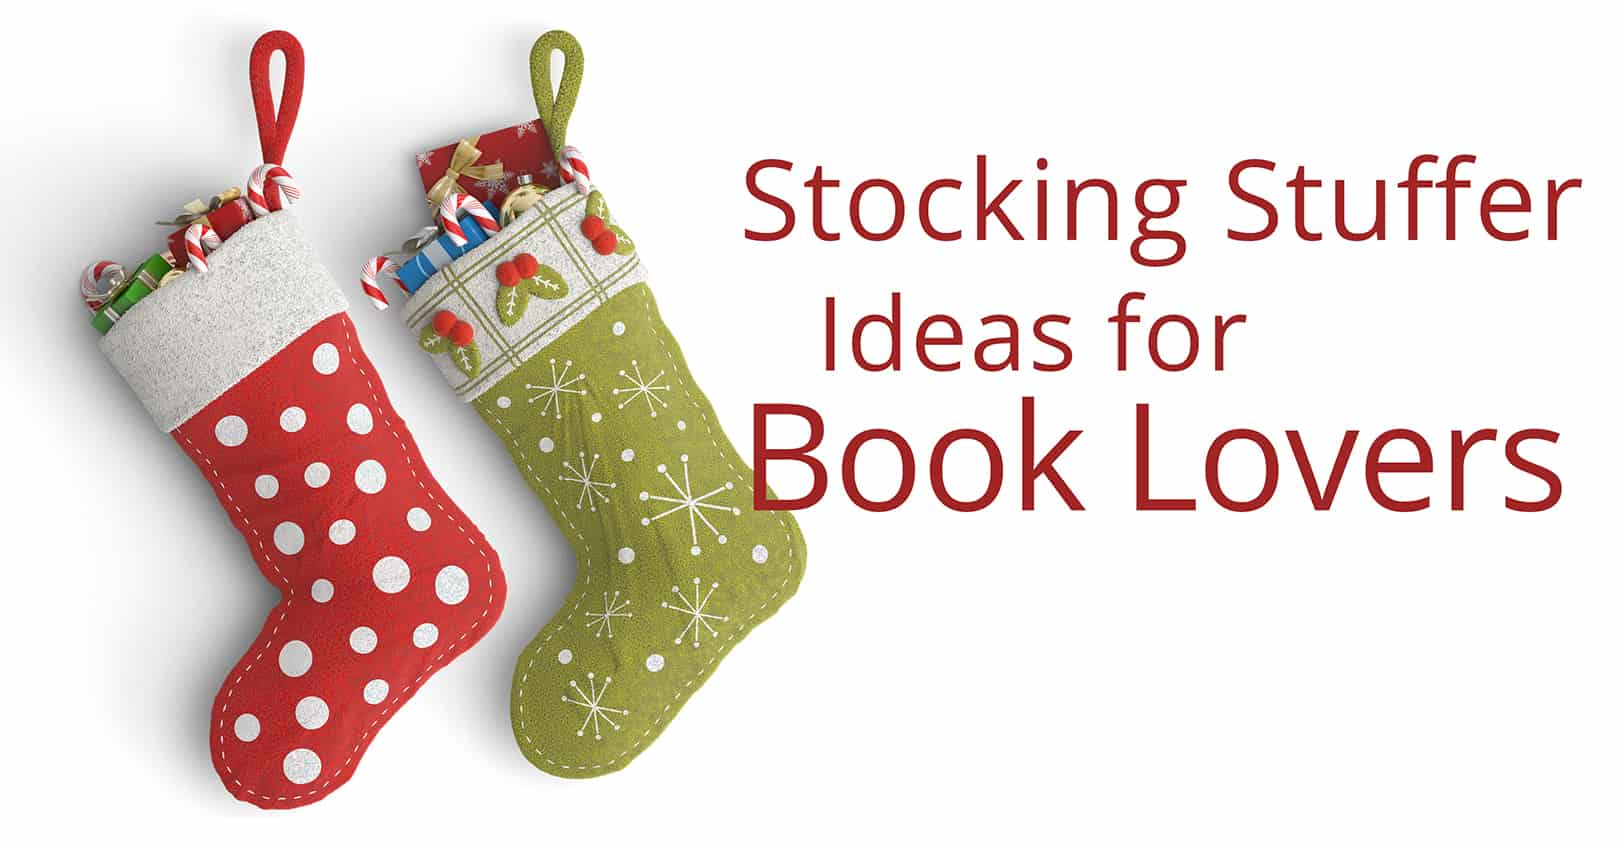 stocking stuffer ideas for book lovers